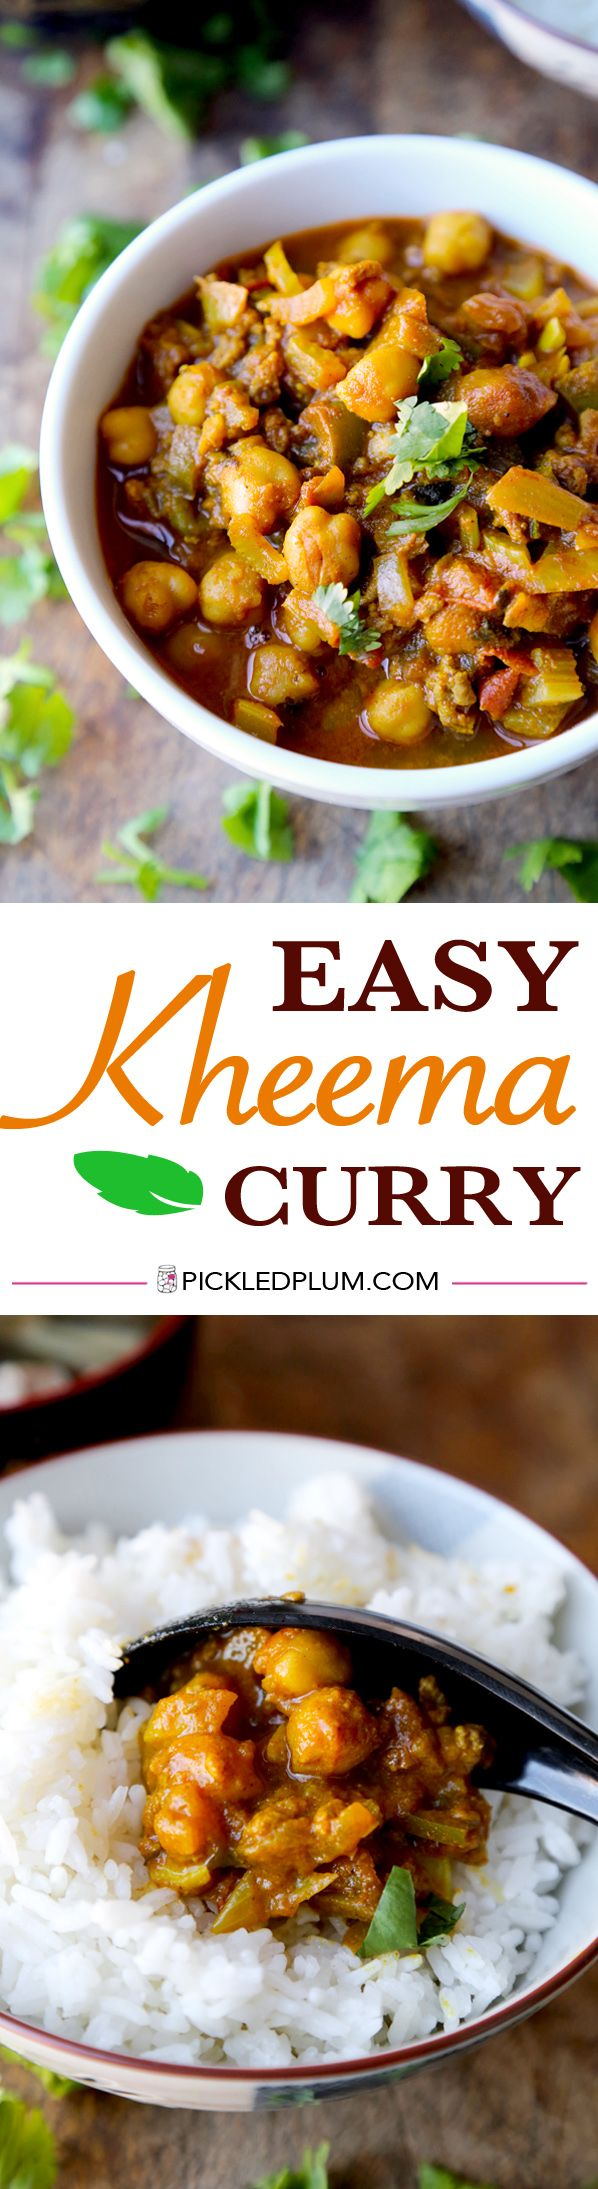 Ground Beef Curry Kheema Pickled Plum Food And Drinks Recipe Beef Steak Recipes Curry Recipes Healthy Eating Recipes